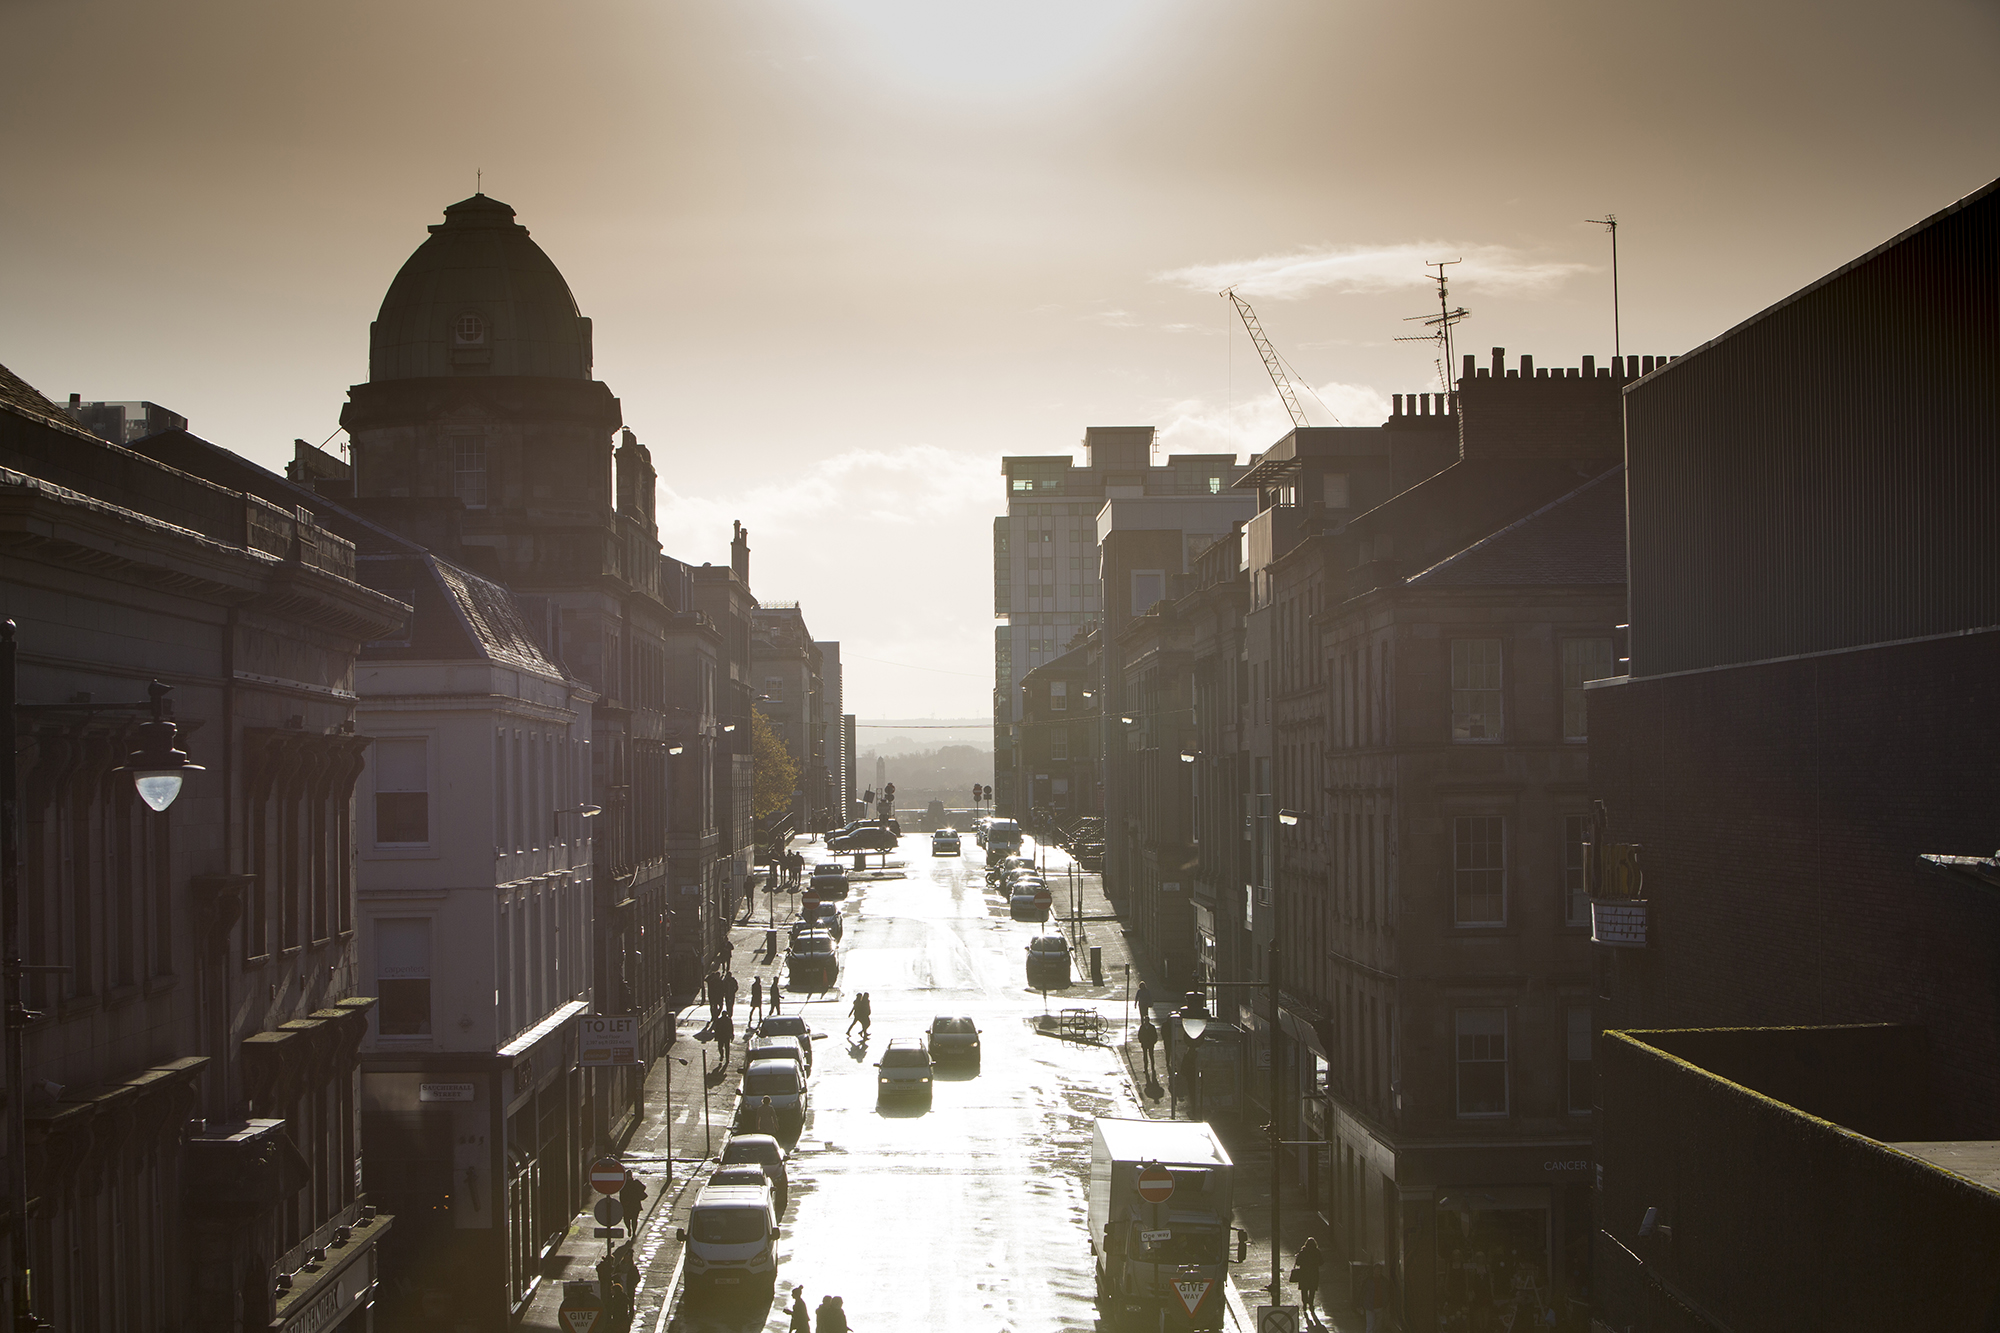 Looking south on Douglas Street | By McAteer Photograph